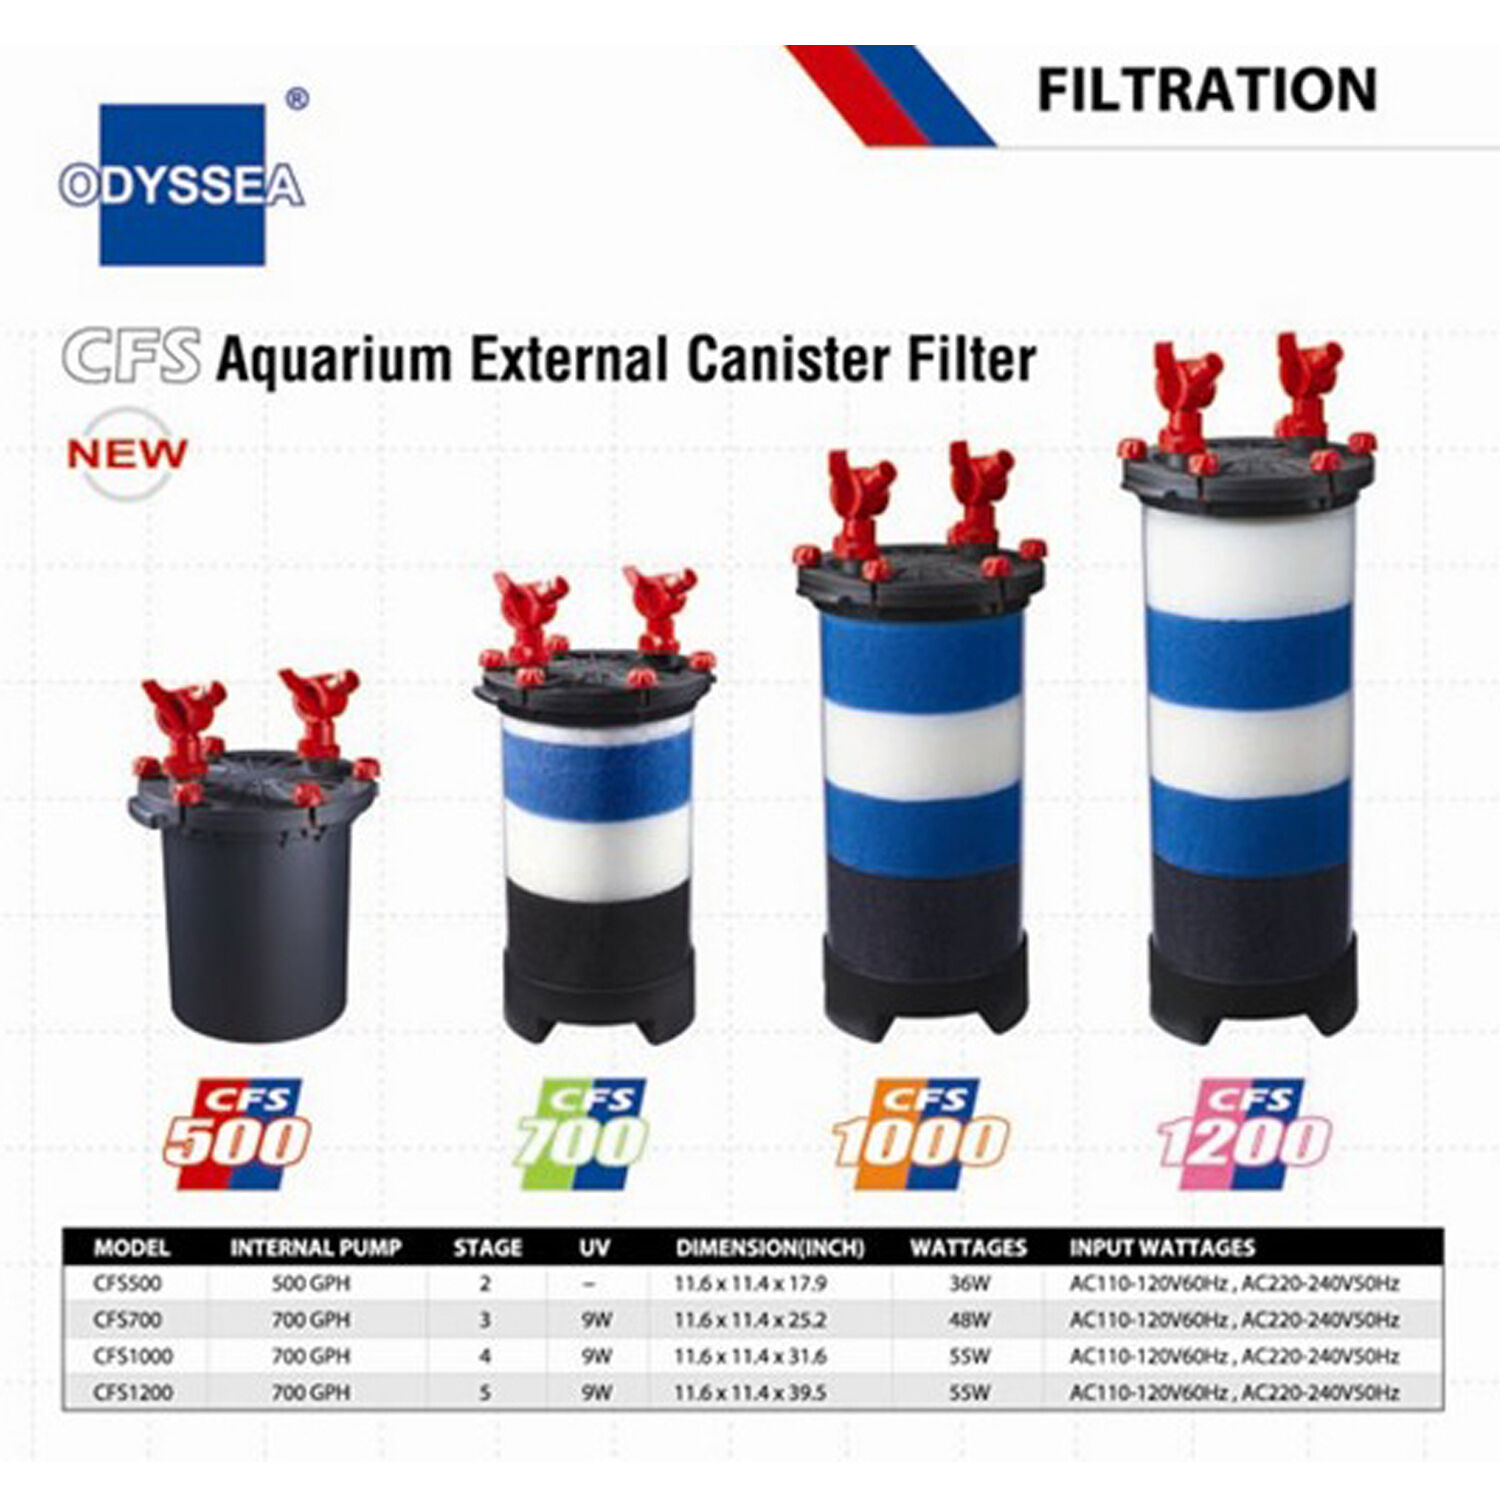 Shut Off Valves Canister Filter Cfs 500 700 Uv Pet Supplies